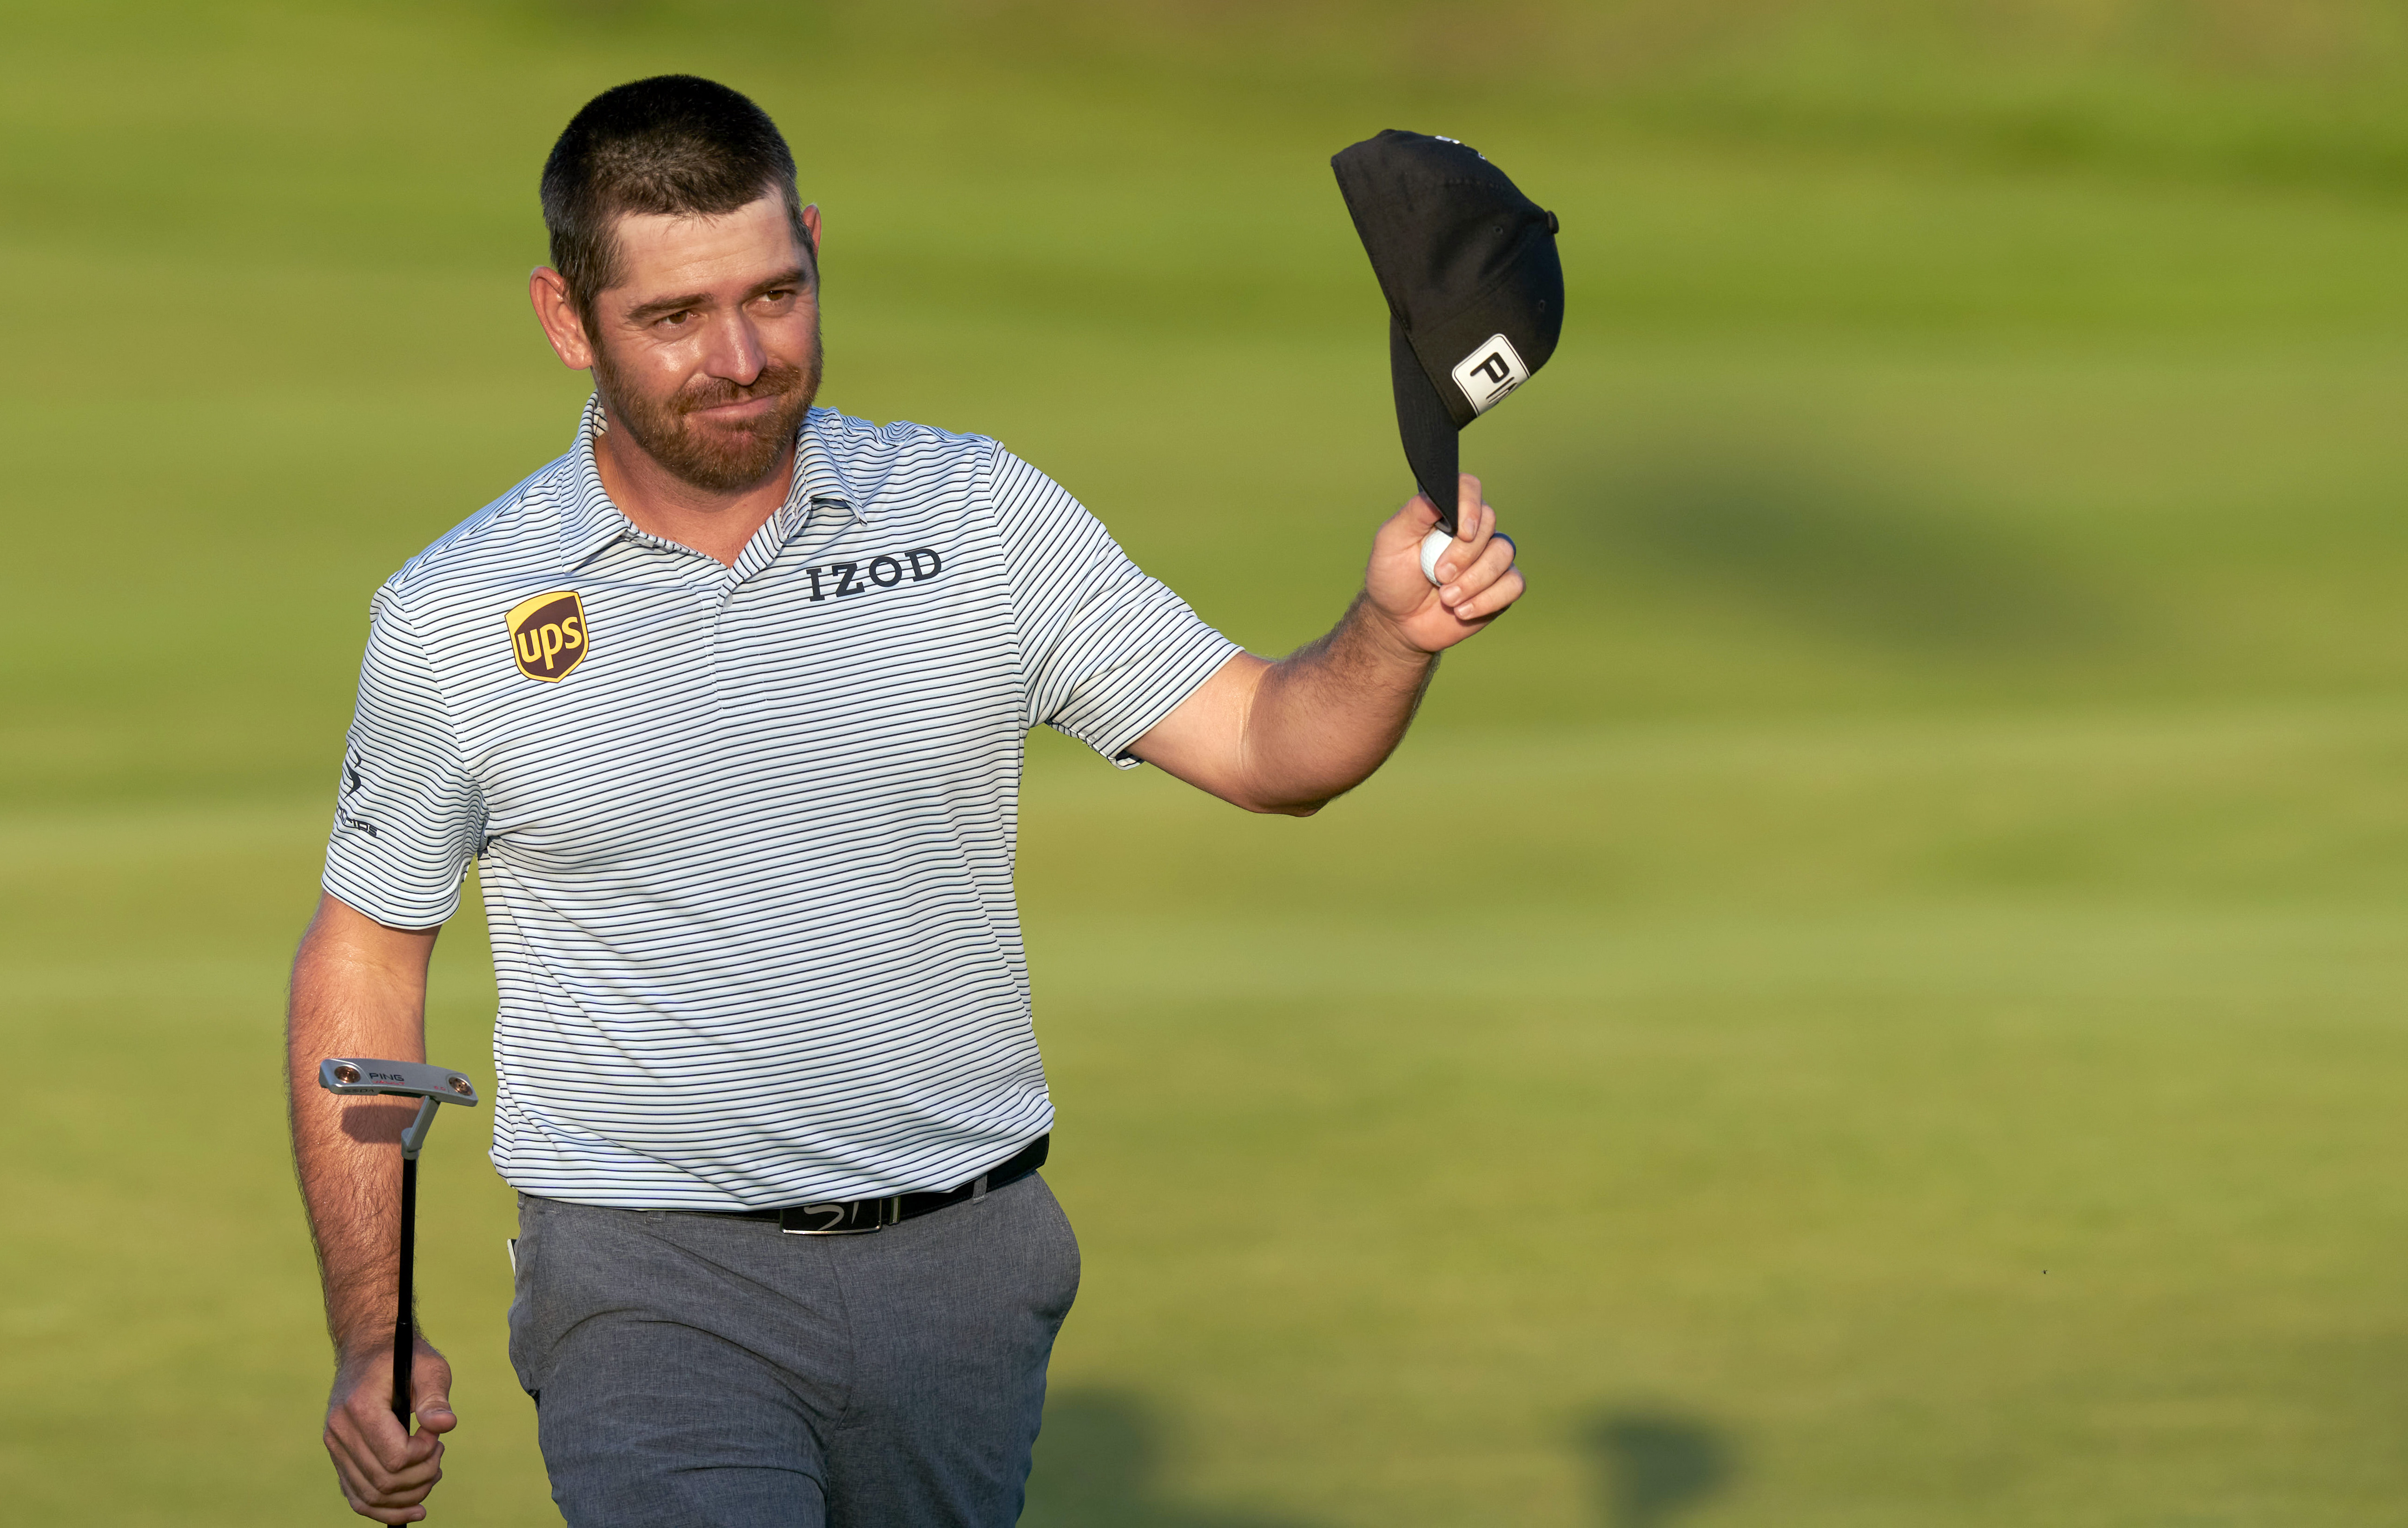 Jul 17, 2021; Sandwich, England, GBR; Louis Oosthuizen acknowledges the gallery after his putt on the 18th green during the third round of the Open Championship golf tournament. Mandatory Credit: Peter van den Berg-USA TODAY Sports